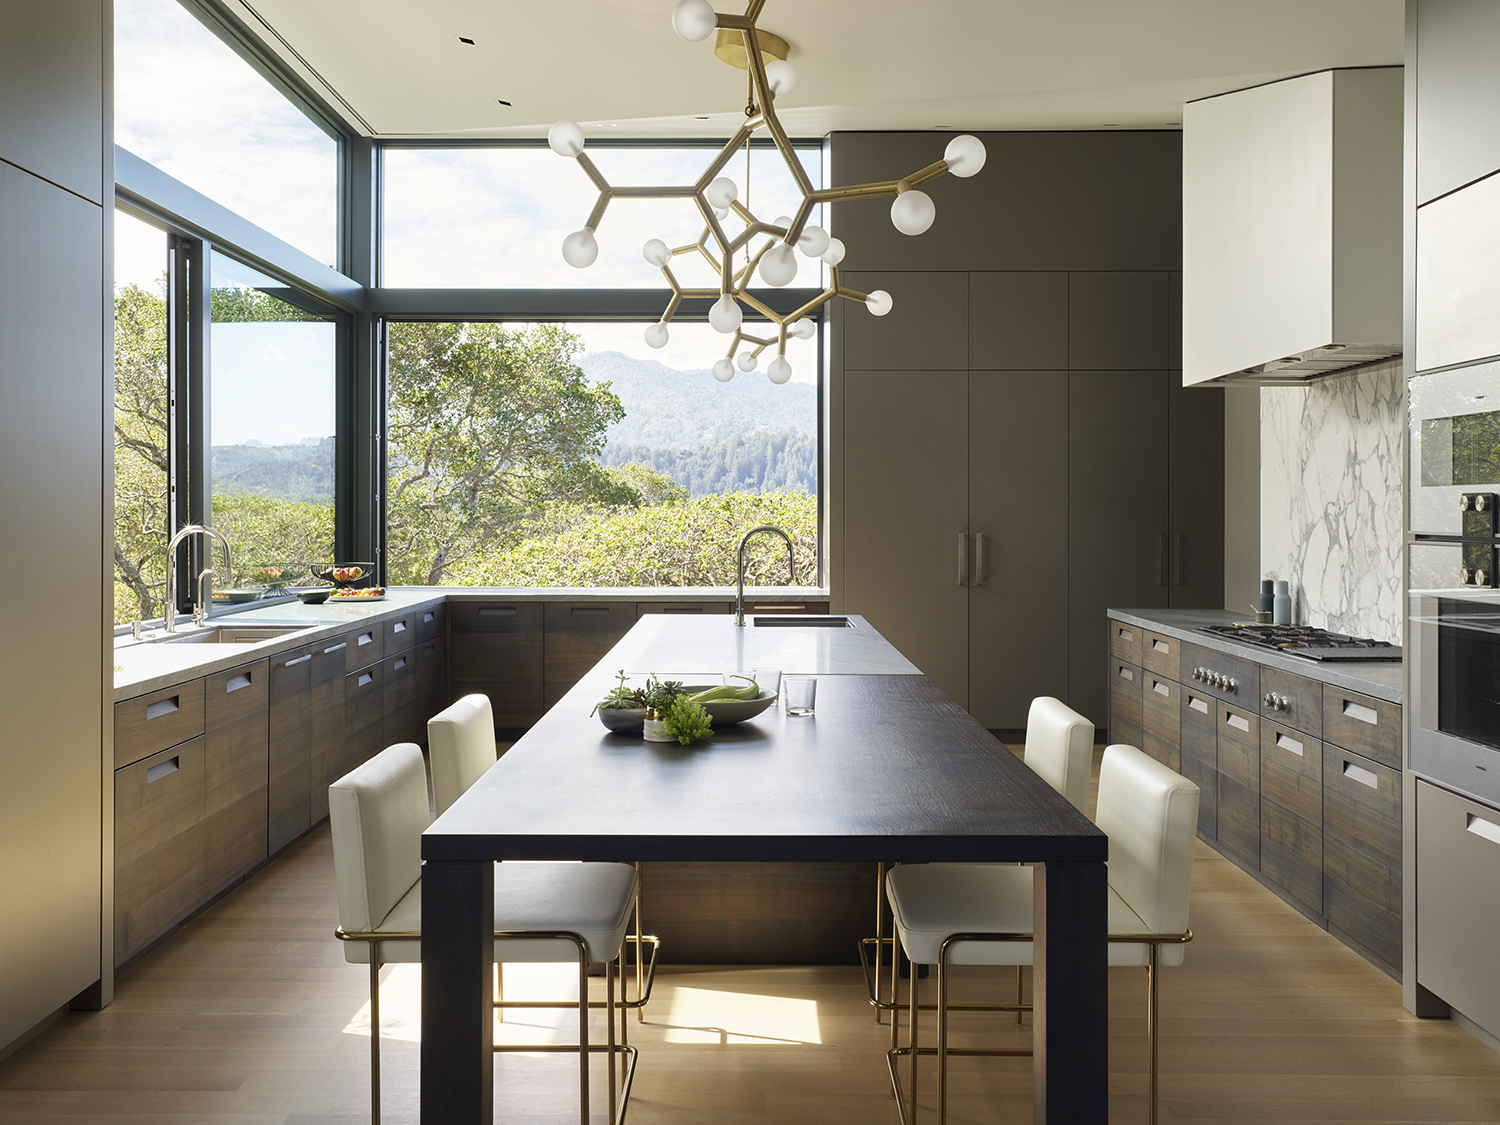 Ross Hillside modern home inside view of kitchen